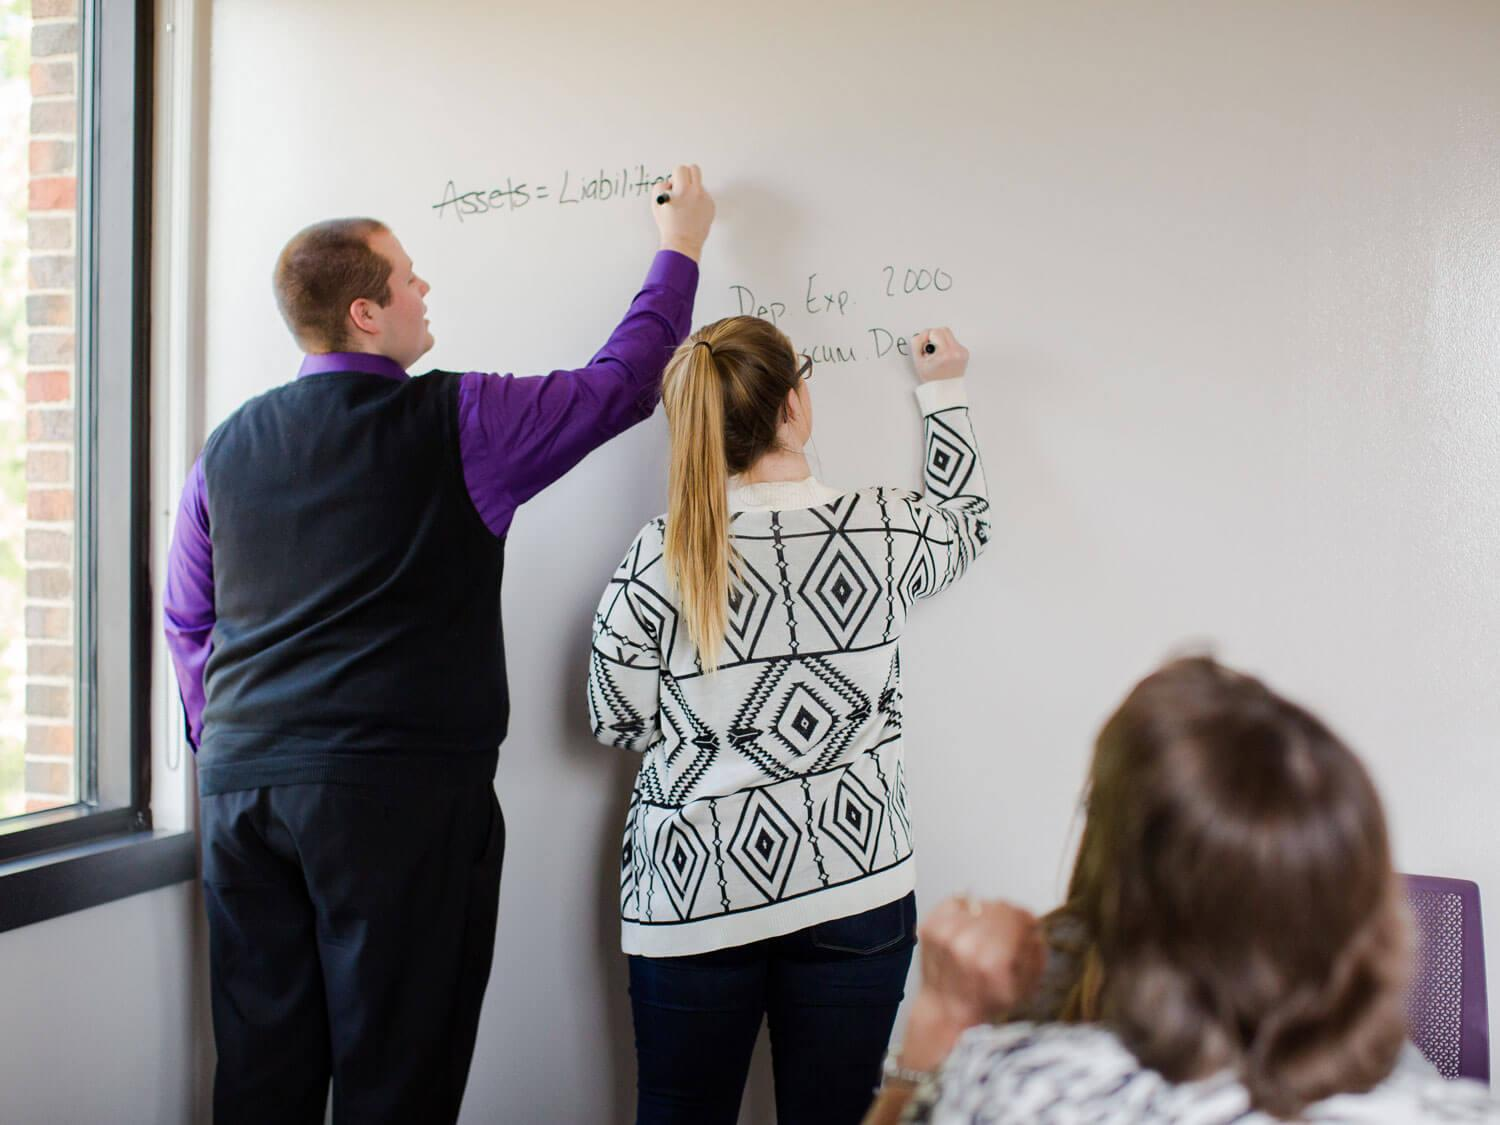 Students work out accounting problems on whiteboard